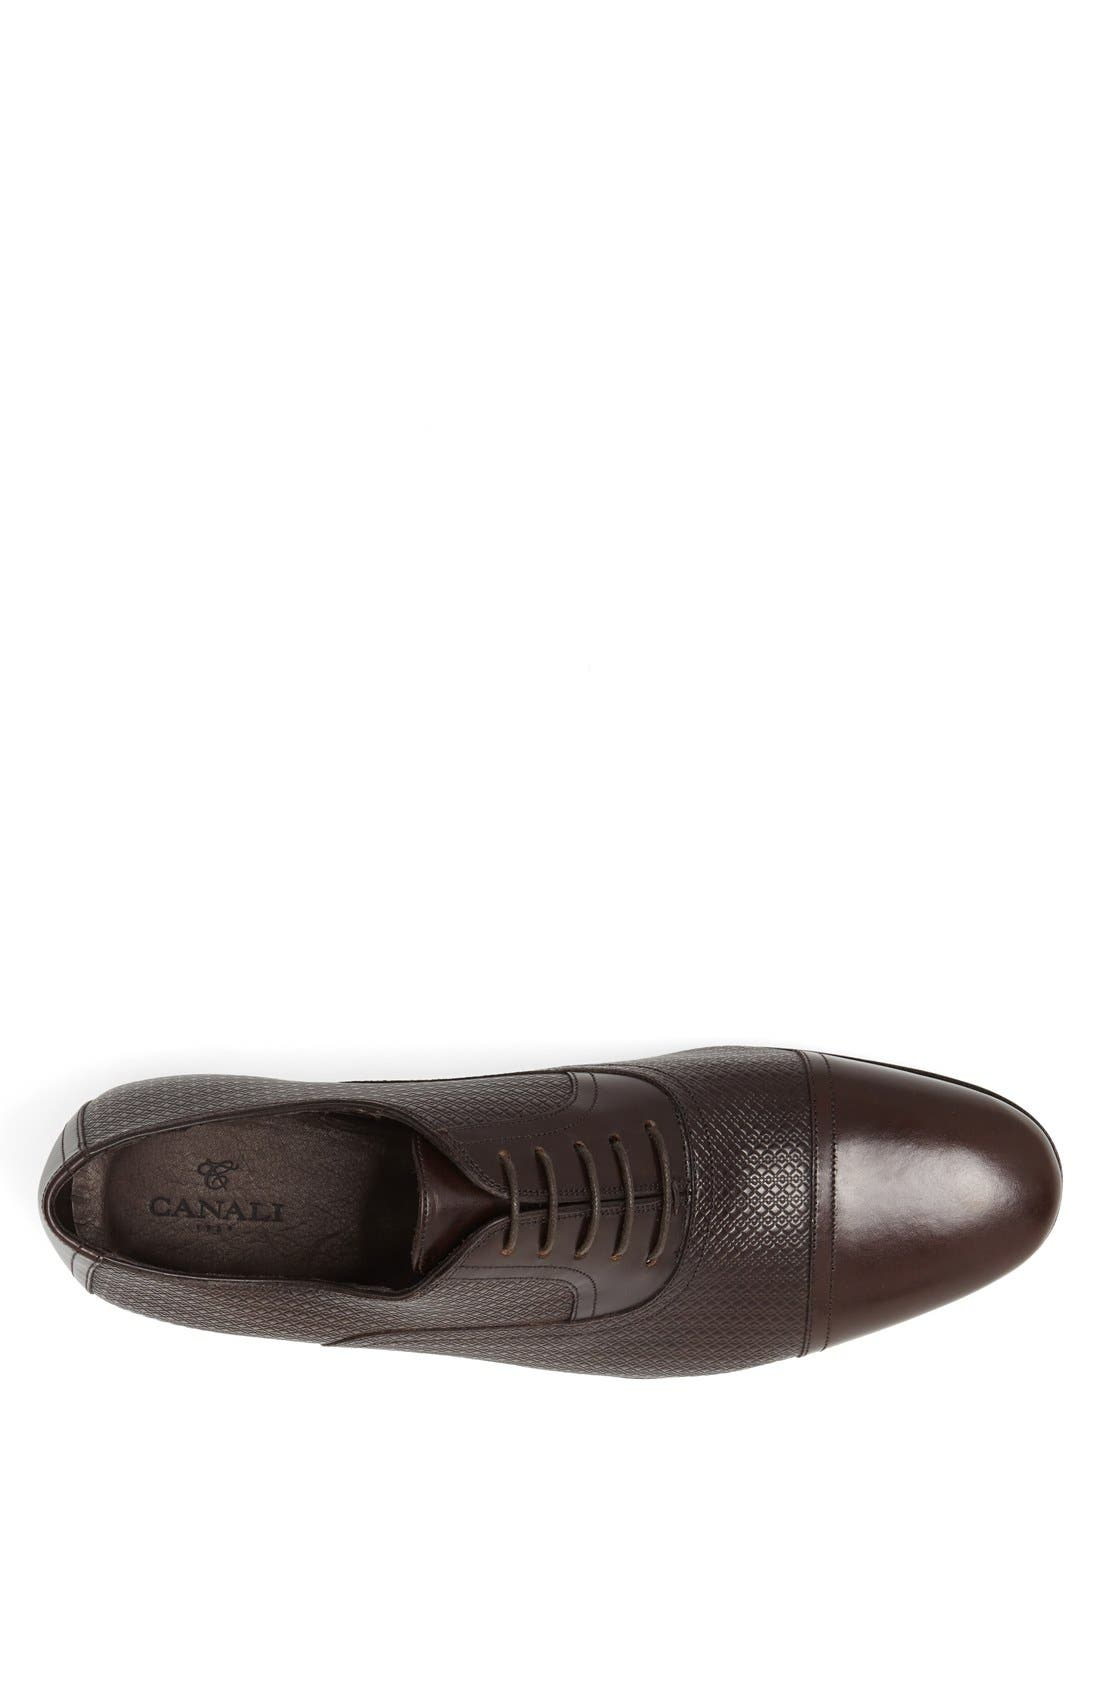 Alternate Image 3  - Canali Cap Toe Oxford (Men)